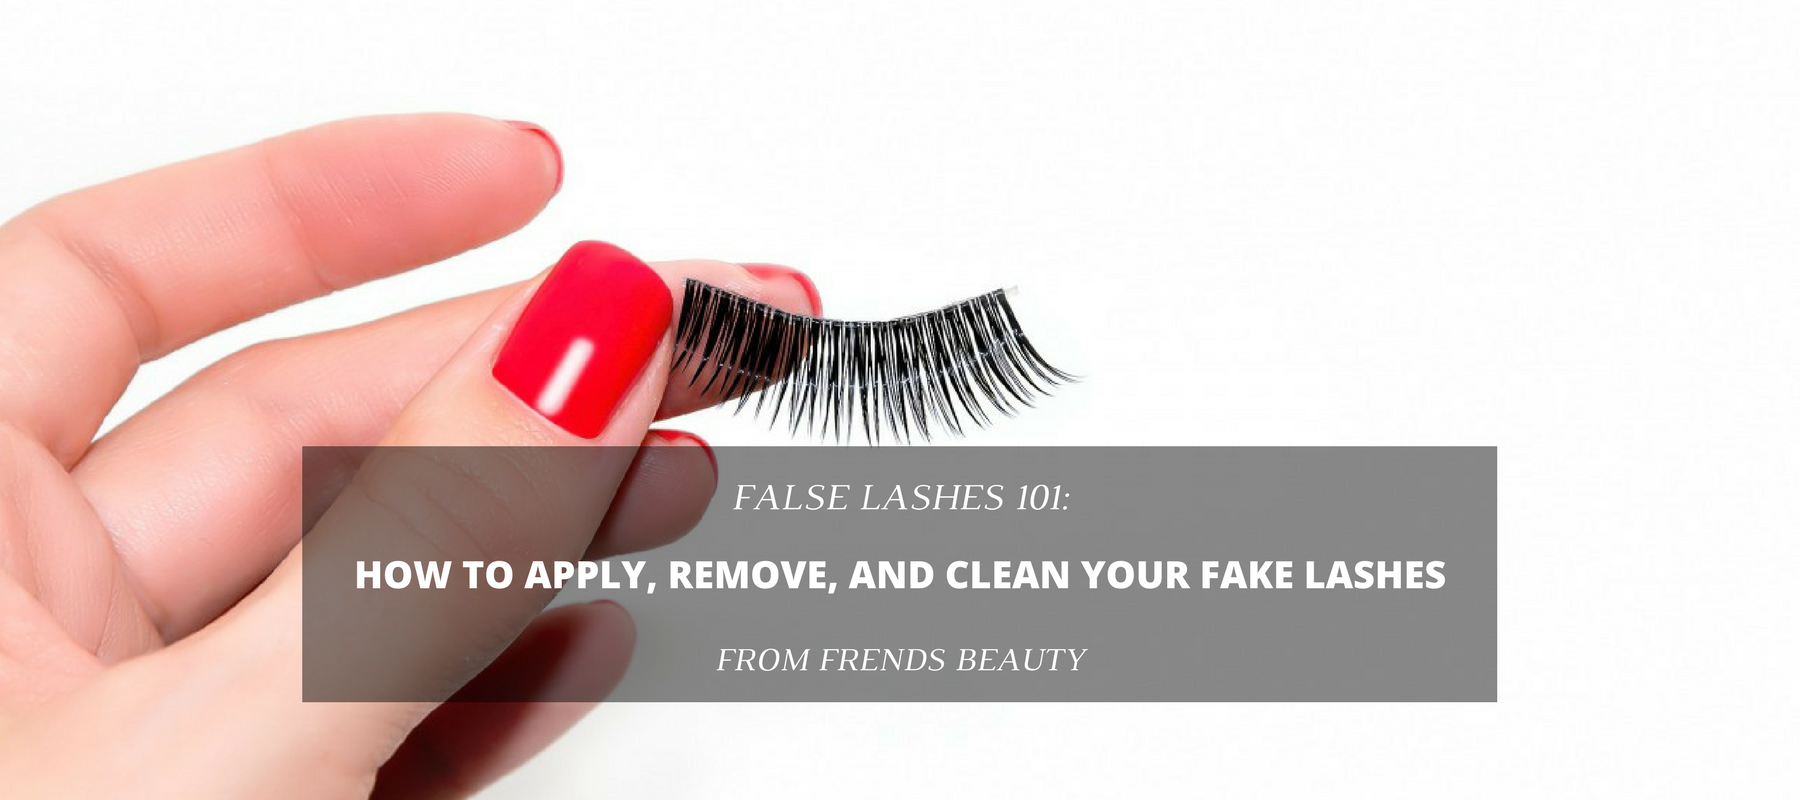 False Lashes 101 How To Apply Remove And Clean Your Fake Lashes